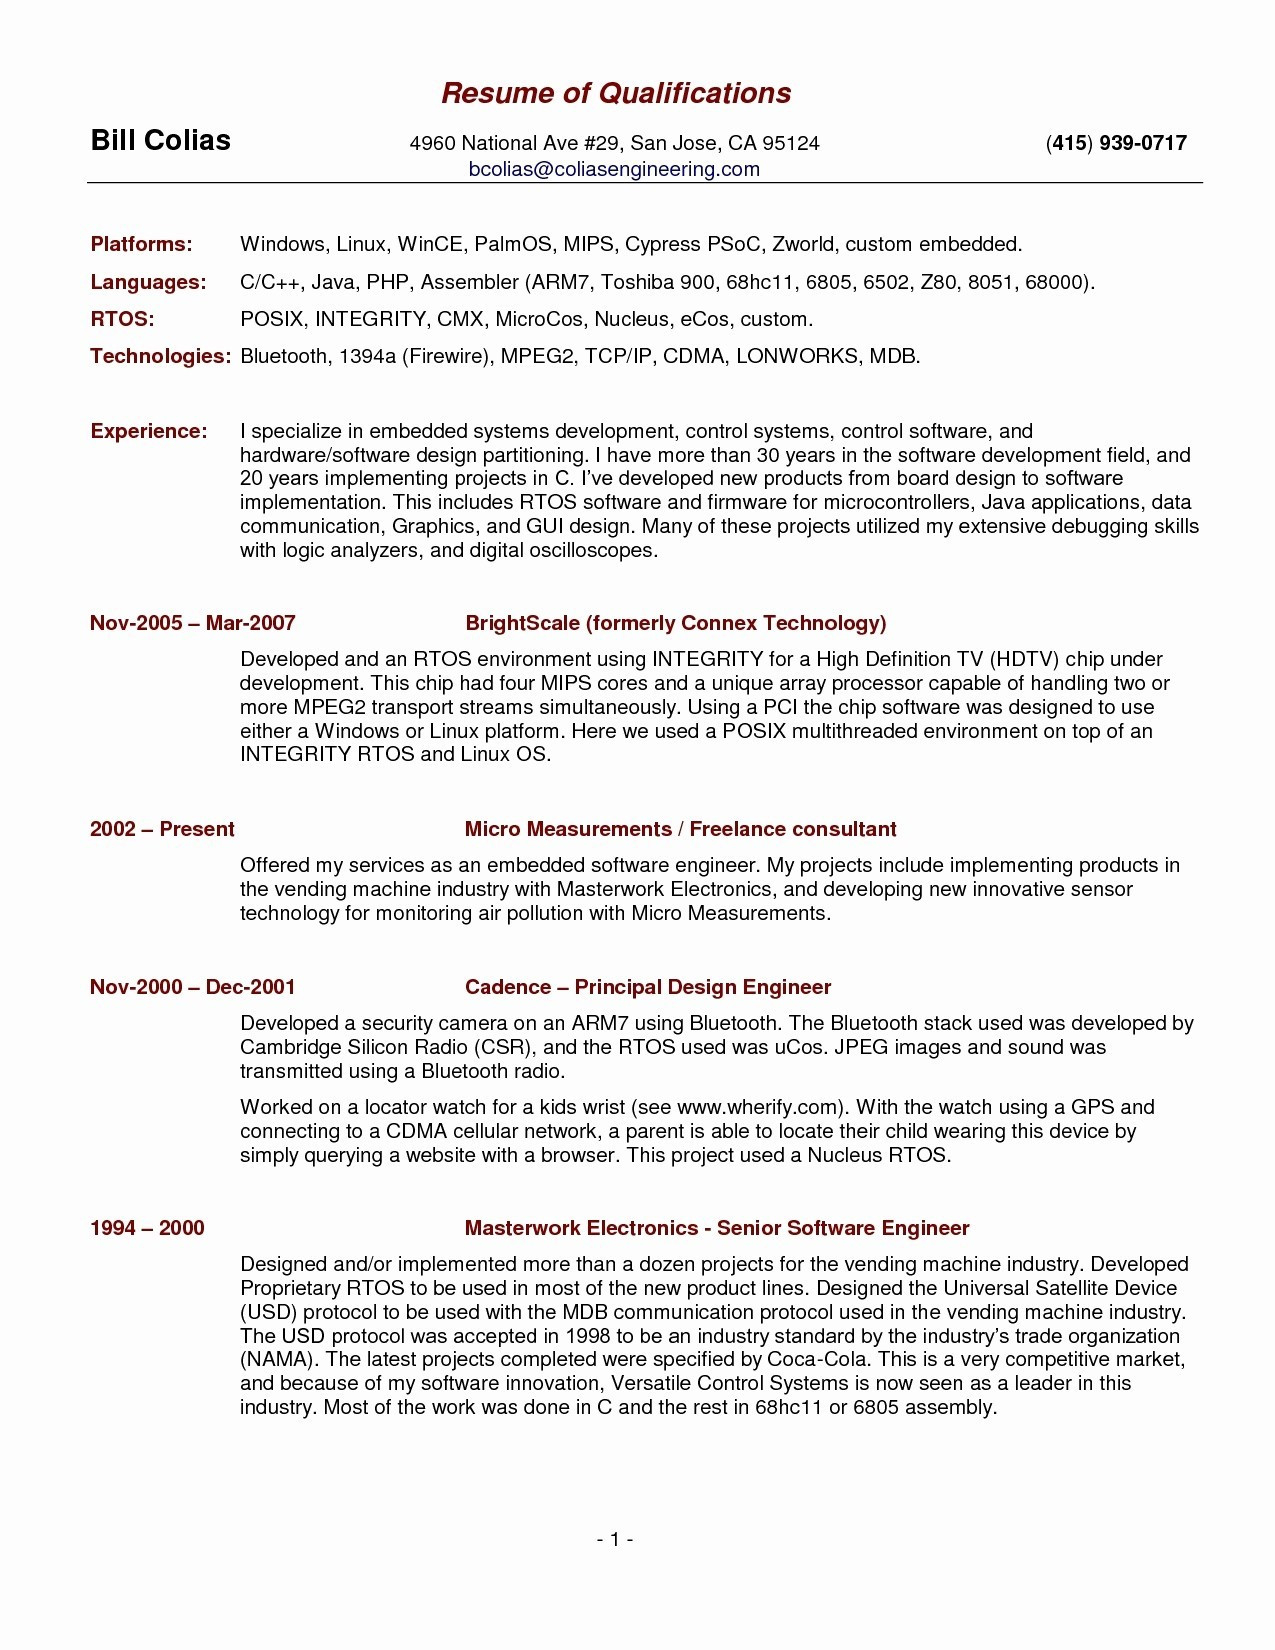 Attractive Resume Templates Free Download - Resume Template for High School Student Best Resume Examples for